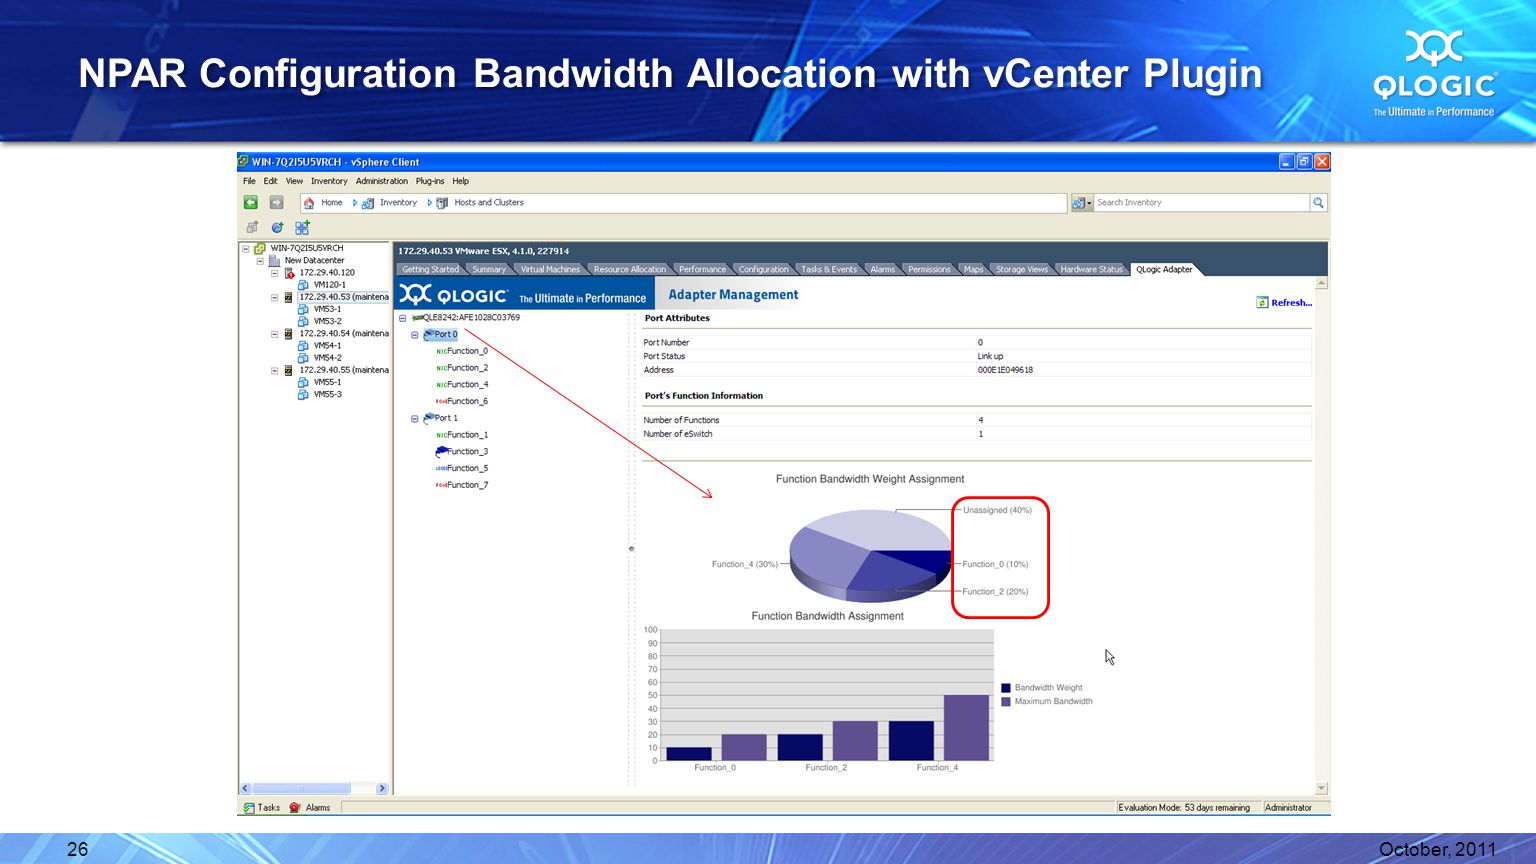 NPAR Configuration Bandwidth Allocation with vCenter Plugin